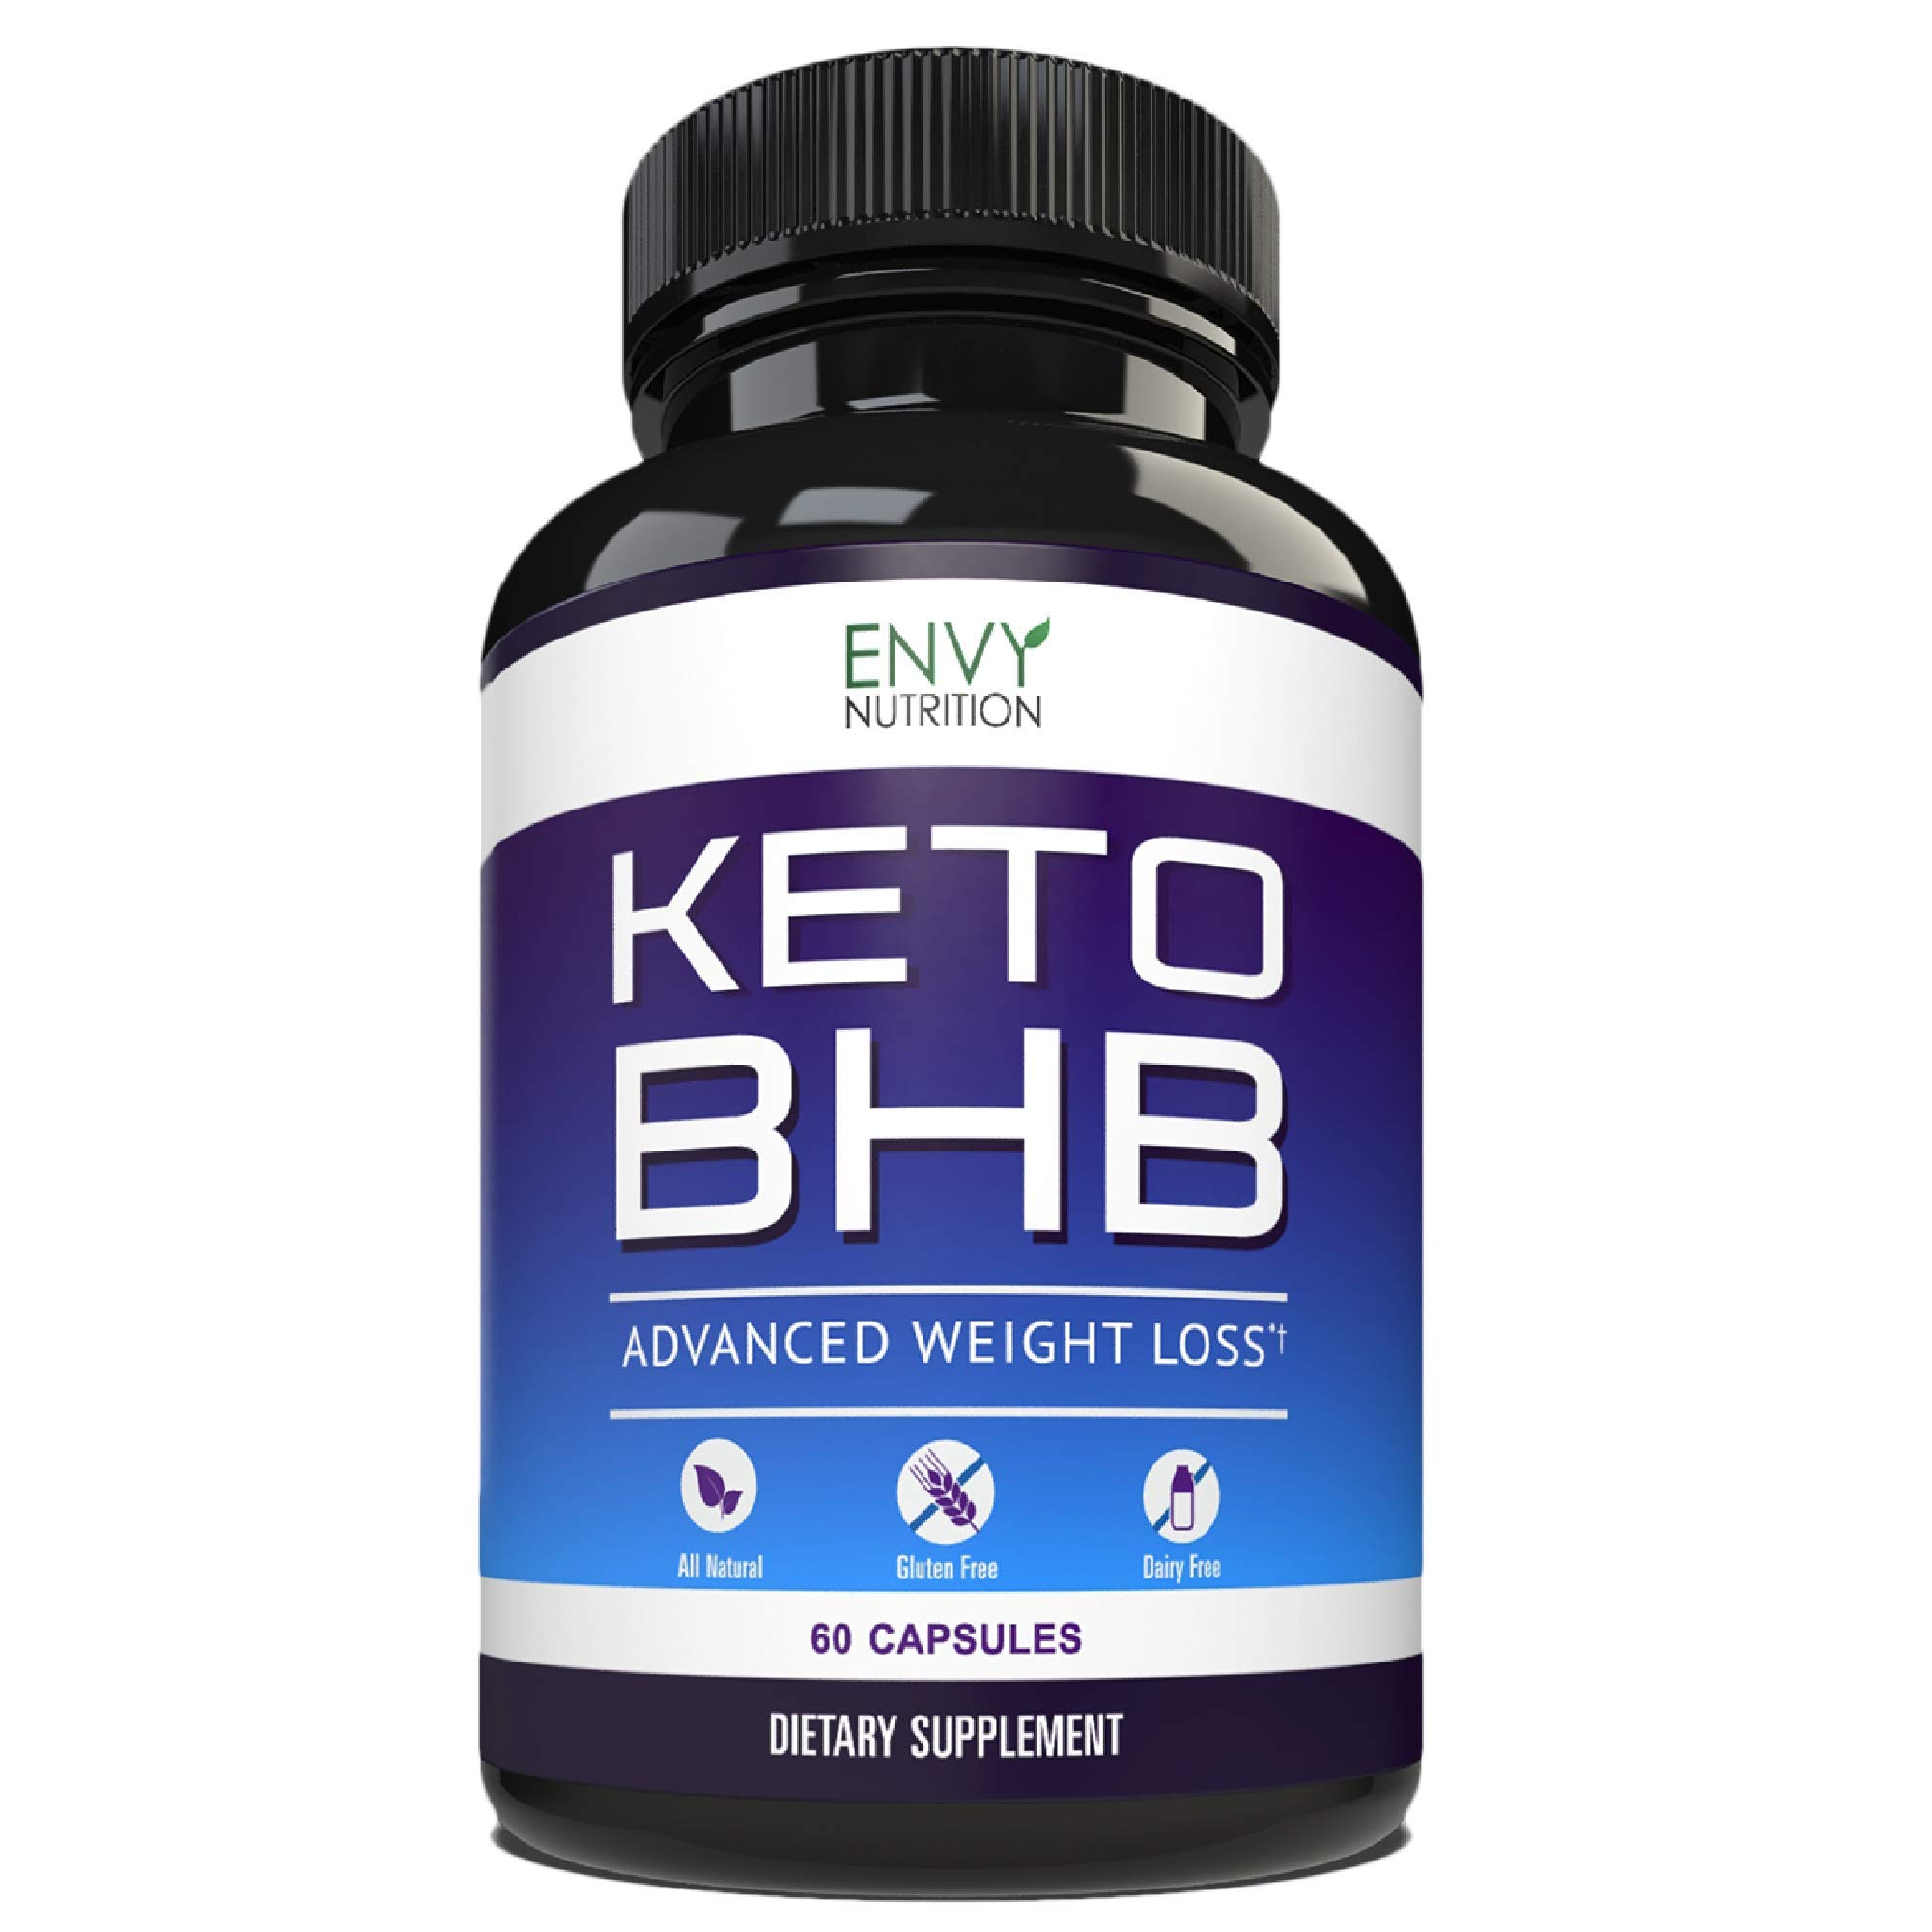 Best Keto Diet Pills - Advanced Weight Loss - BHB Salts Support Fat Burning, Ketosis, Improved Energy and Enhanced Focus by Envy Nutrition